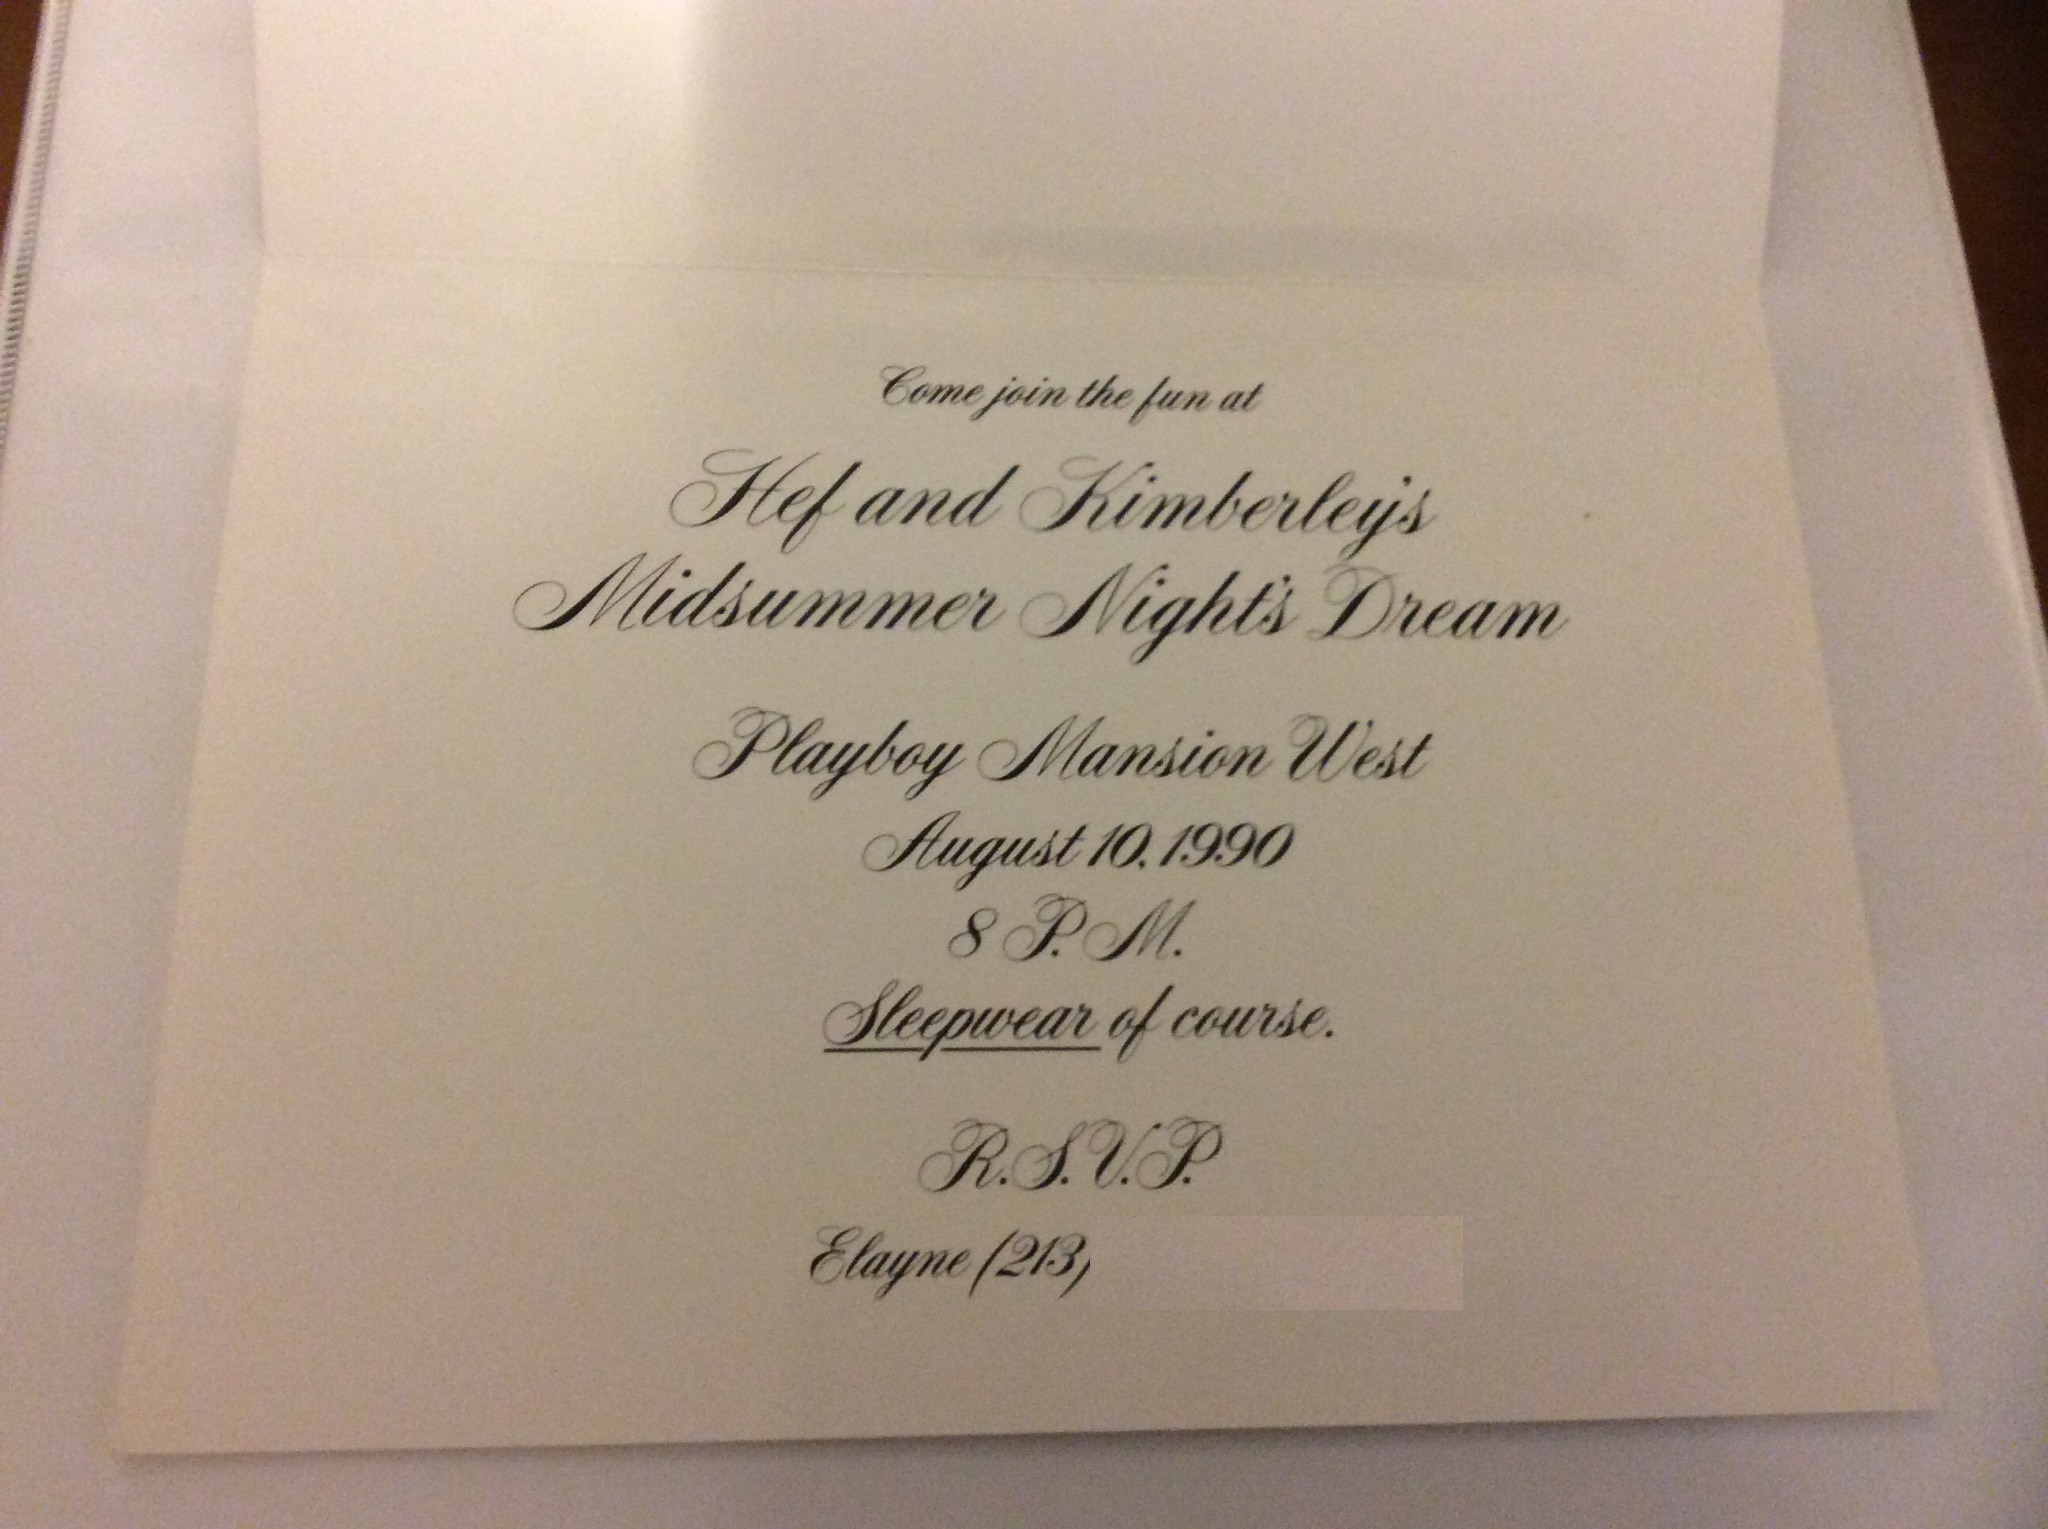 Midsummer Night's Dream 1990 Invitation